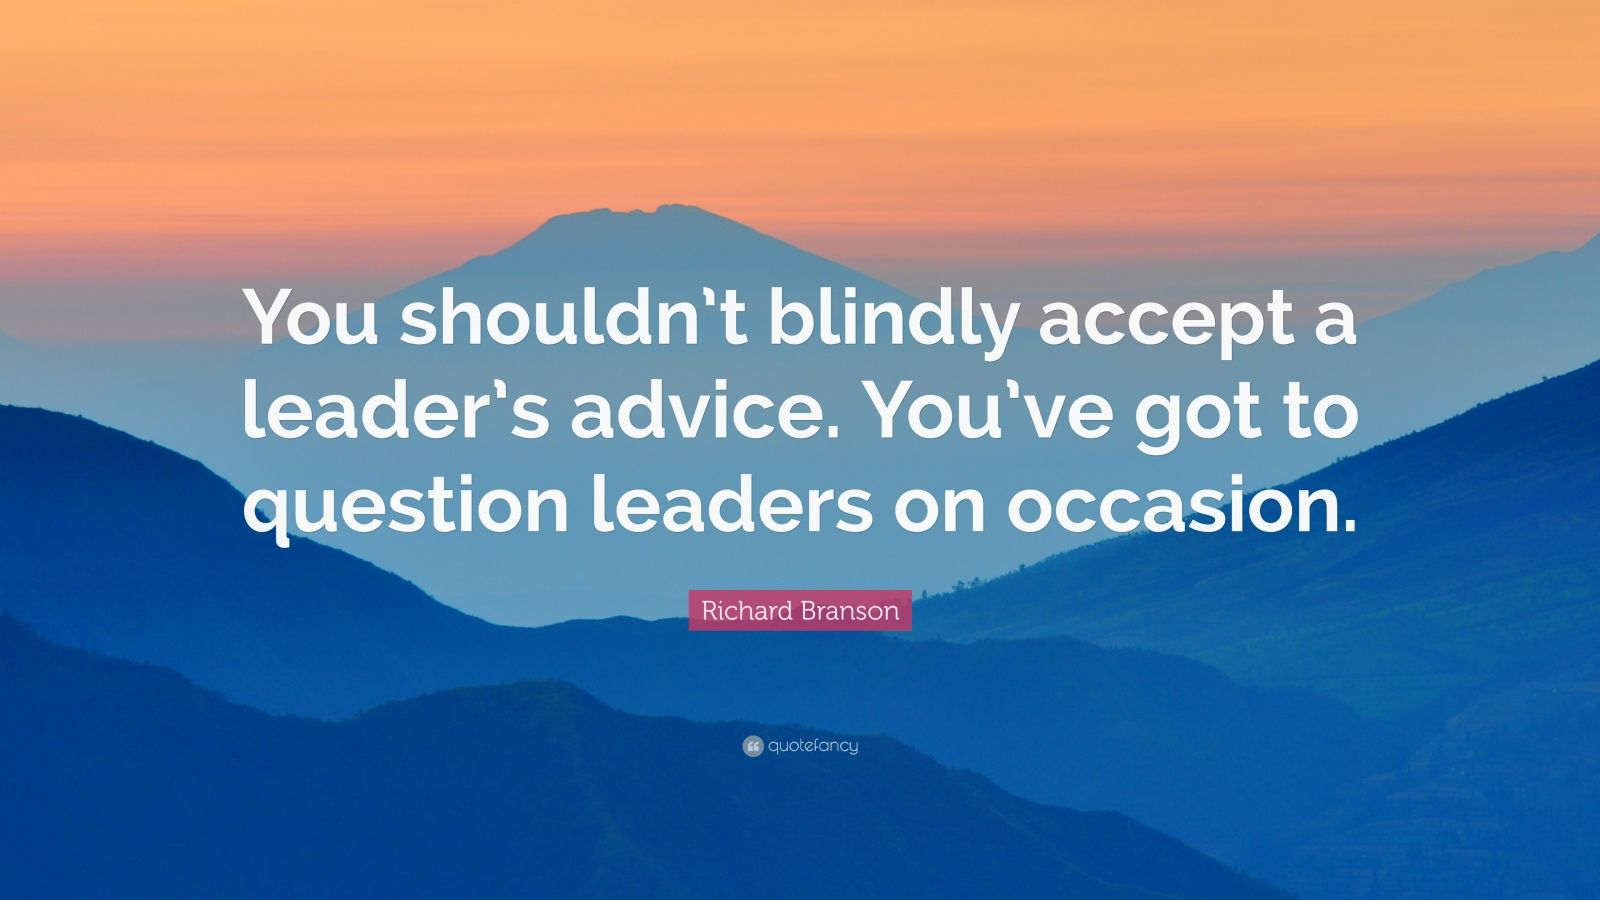 """Richard Branson Quote: """"You shouldn't blindly accept a leader's advice. You've got to question leaders on occasion."""""""